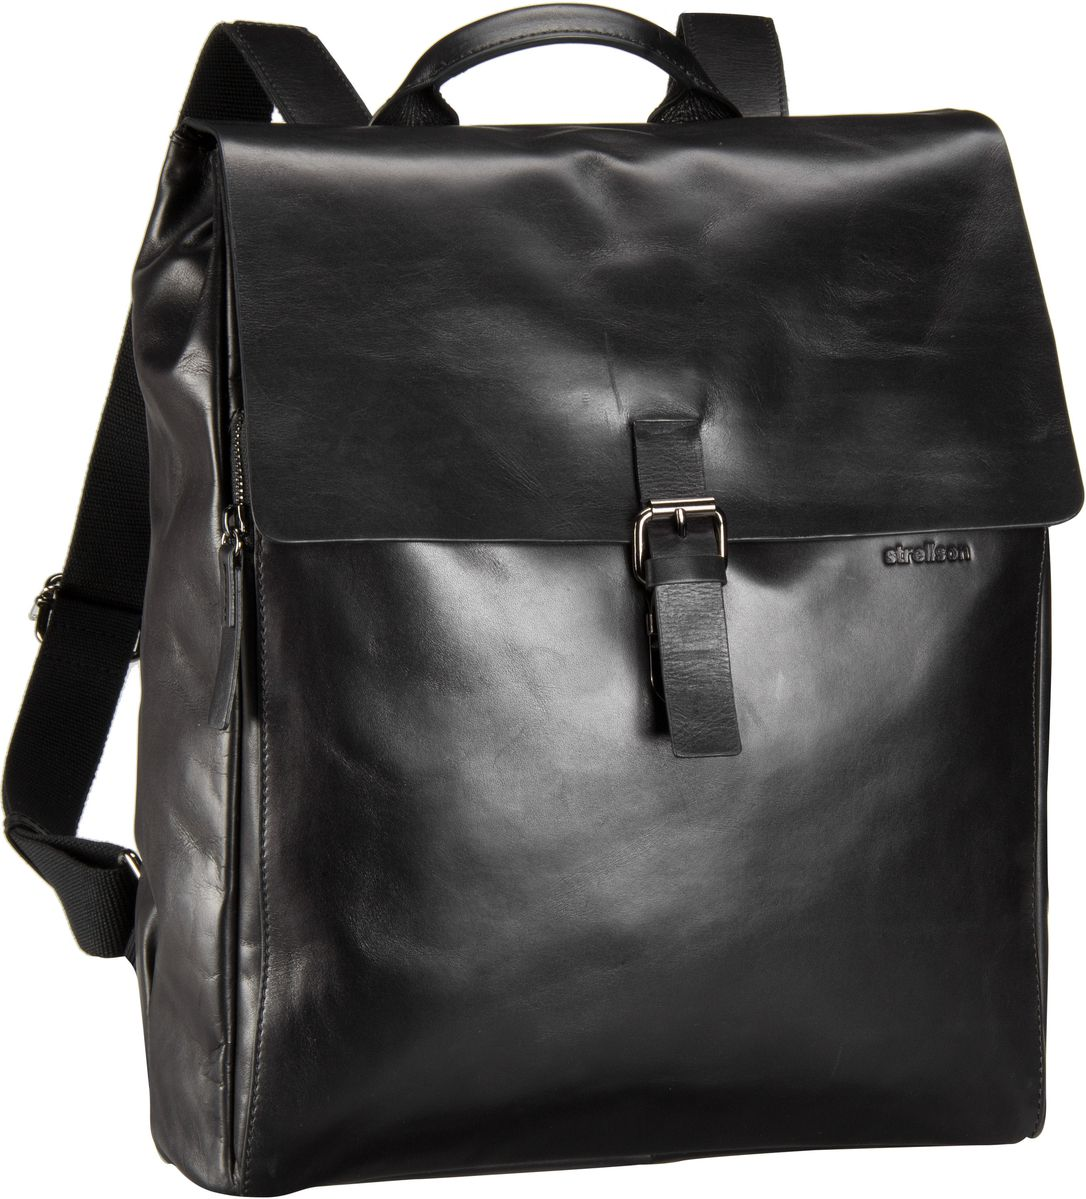 Laptoprucksack Scott Backpack Black